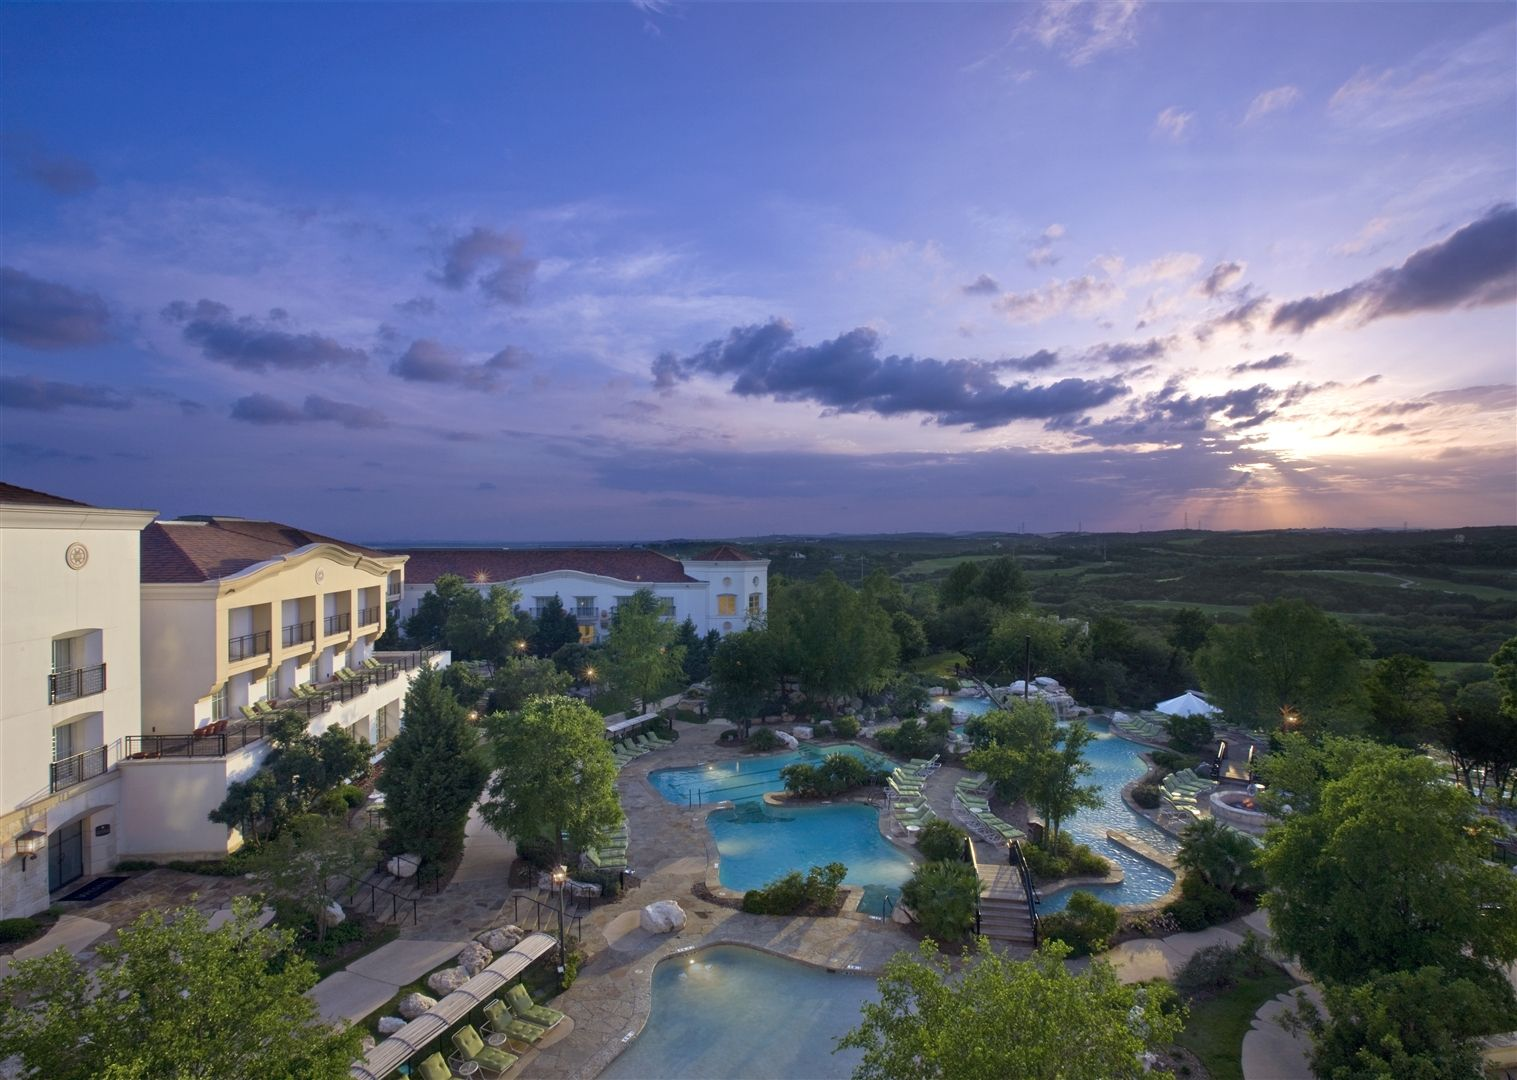 Hill Country Resort Now Hosts A Weight Loss Camp